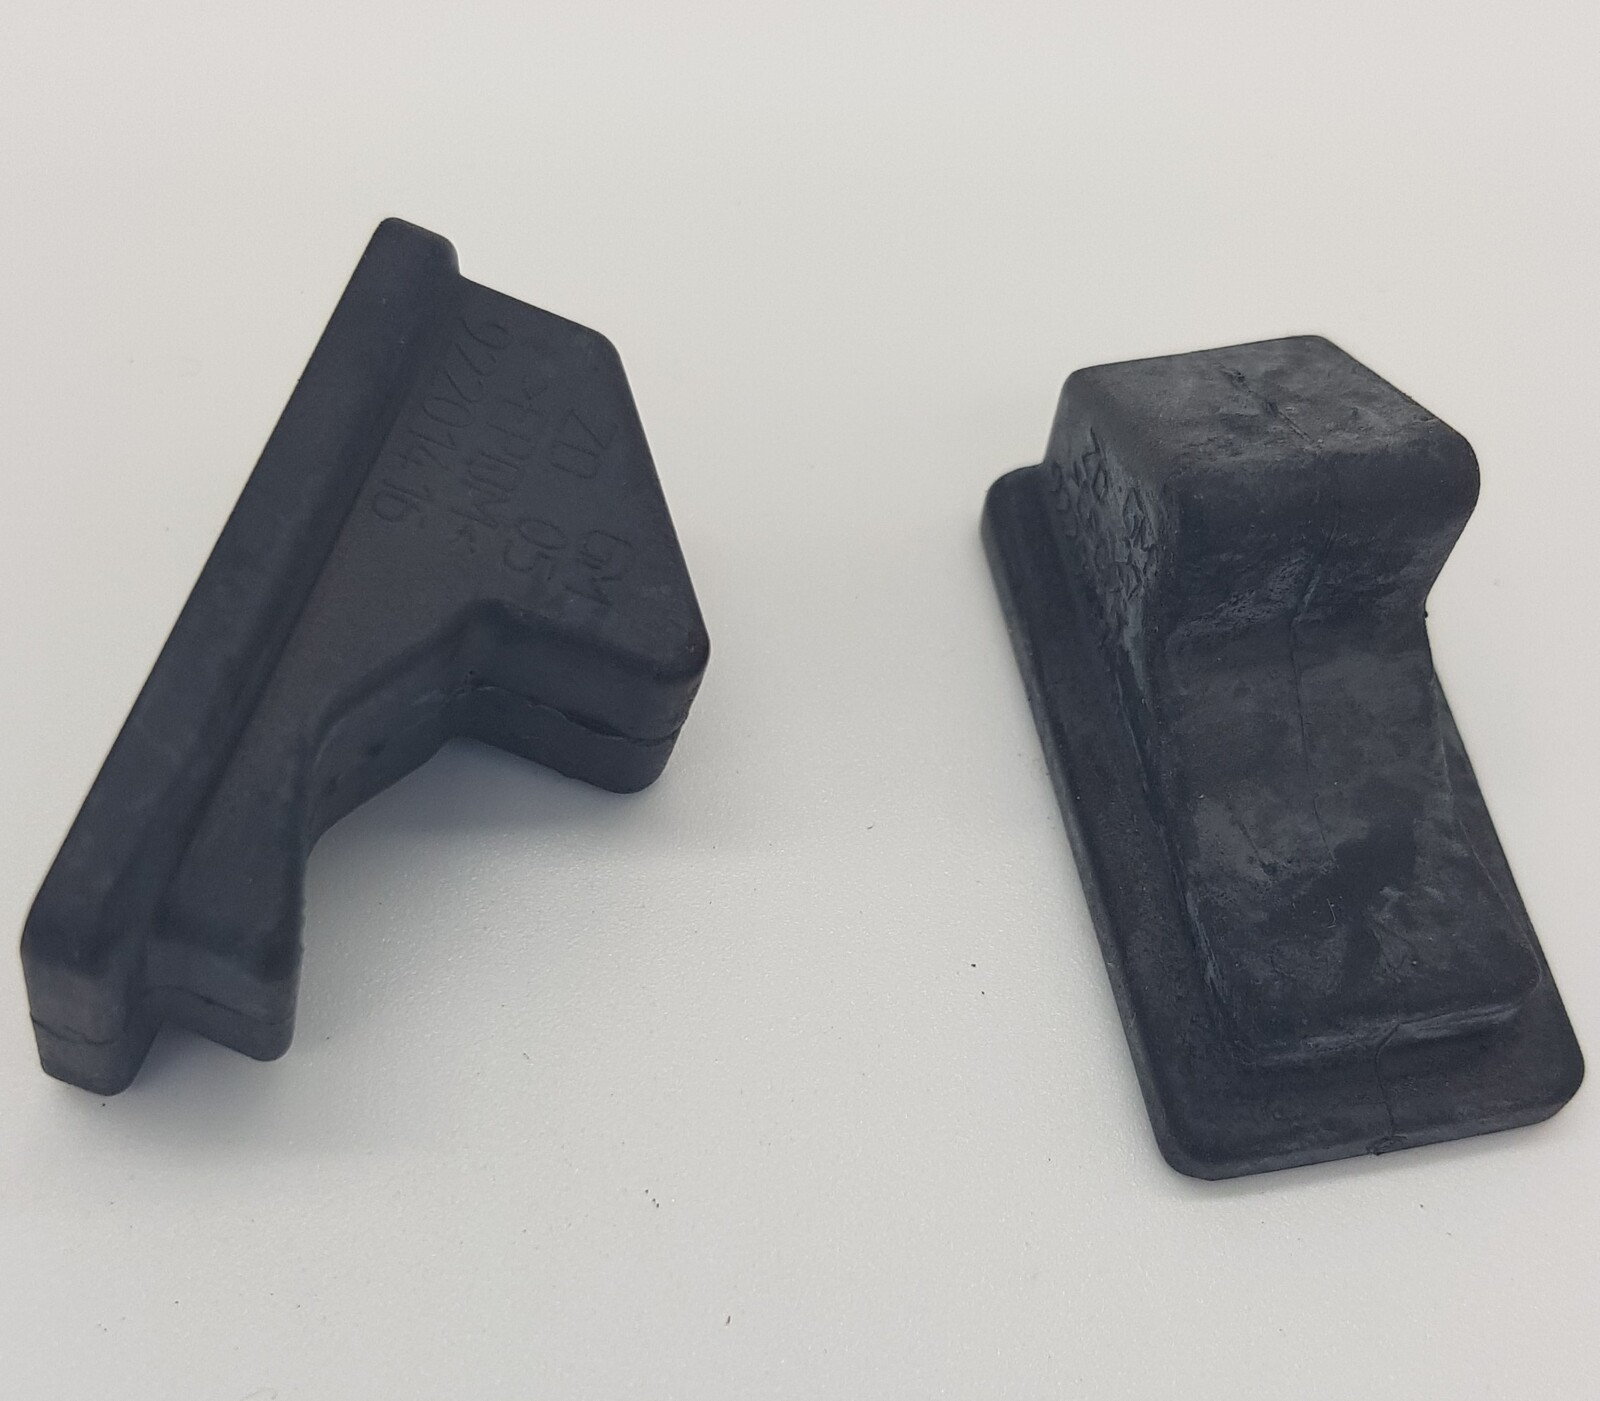 LOWER GLOVE BOX BUMP STOP 1 only 92201416 suitable for Holden COMMODORE VY VZ gl